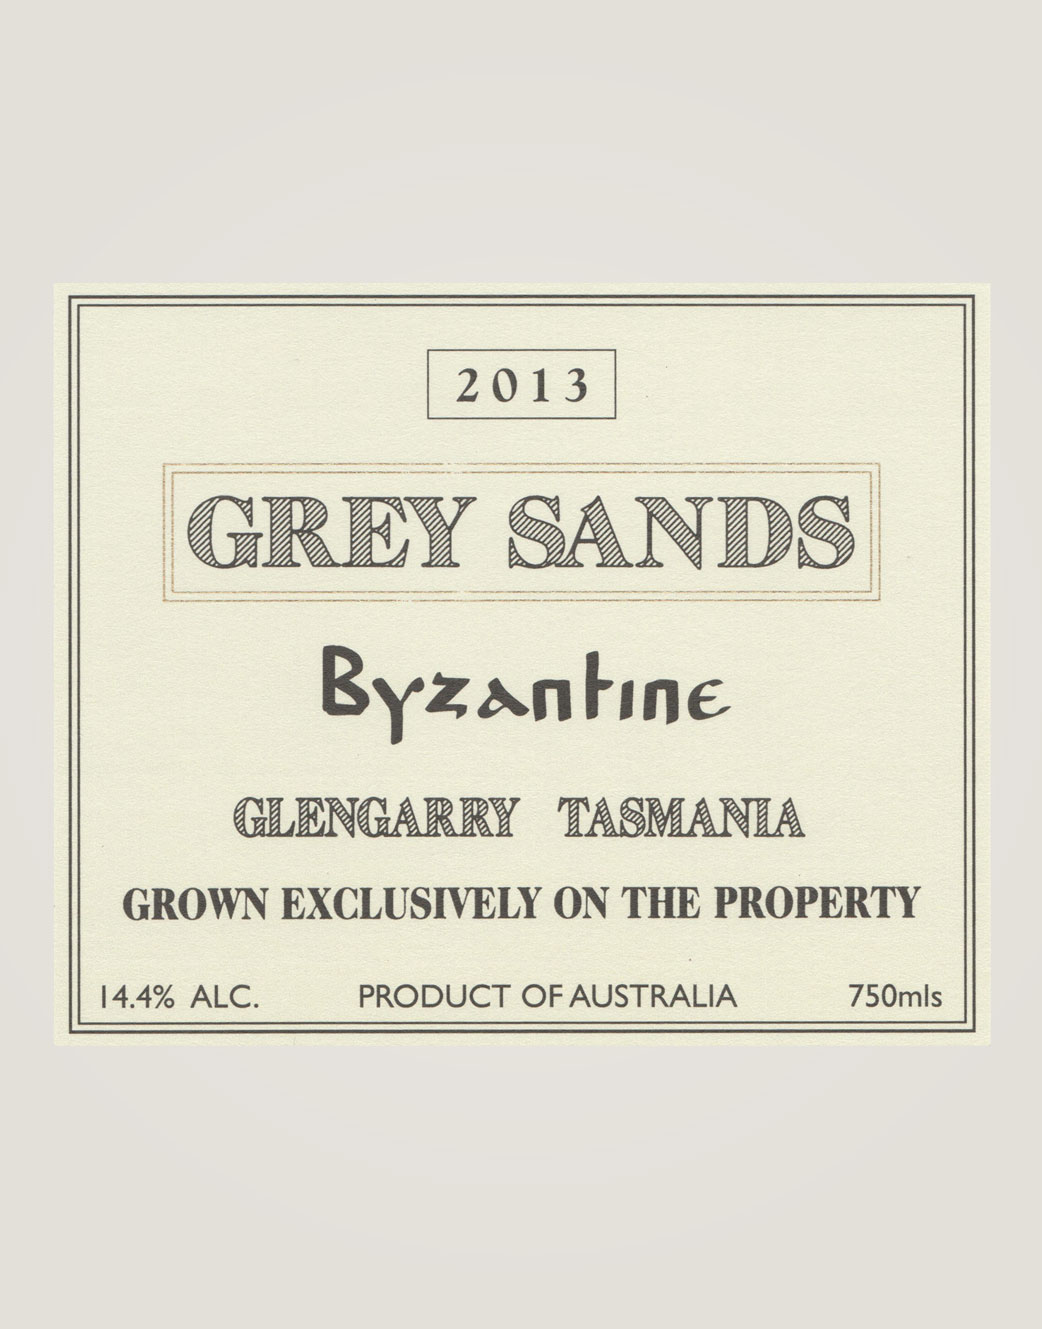 Grey Sands byzantine-13-label